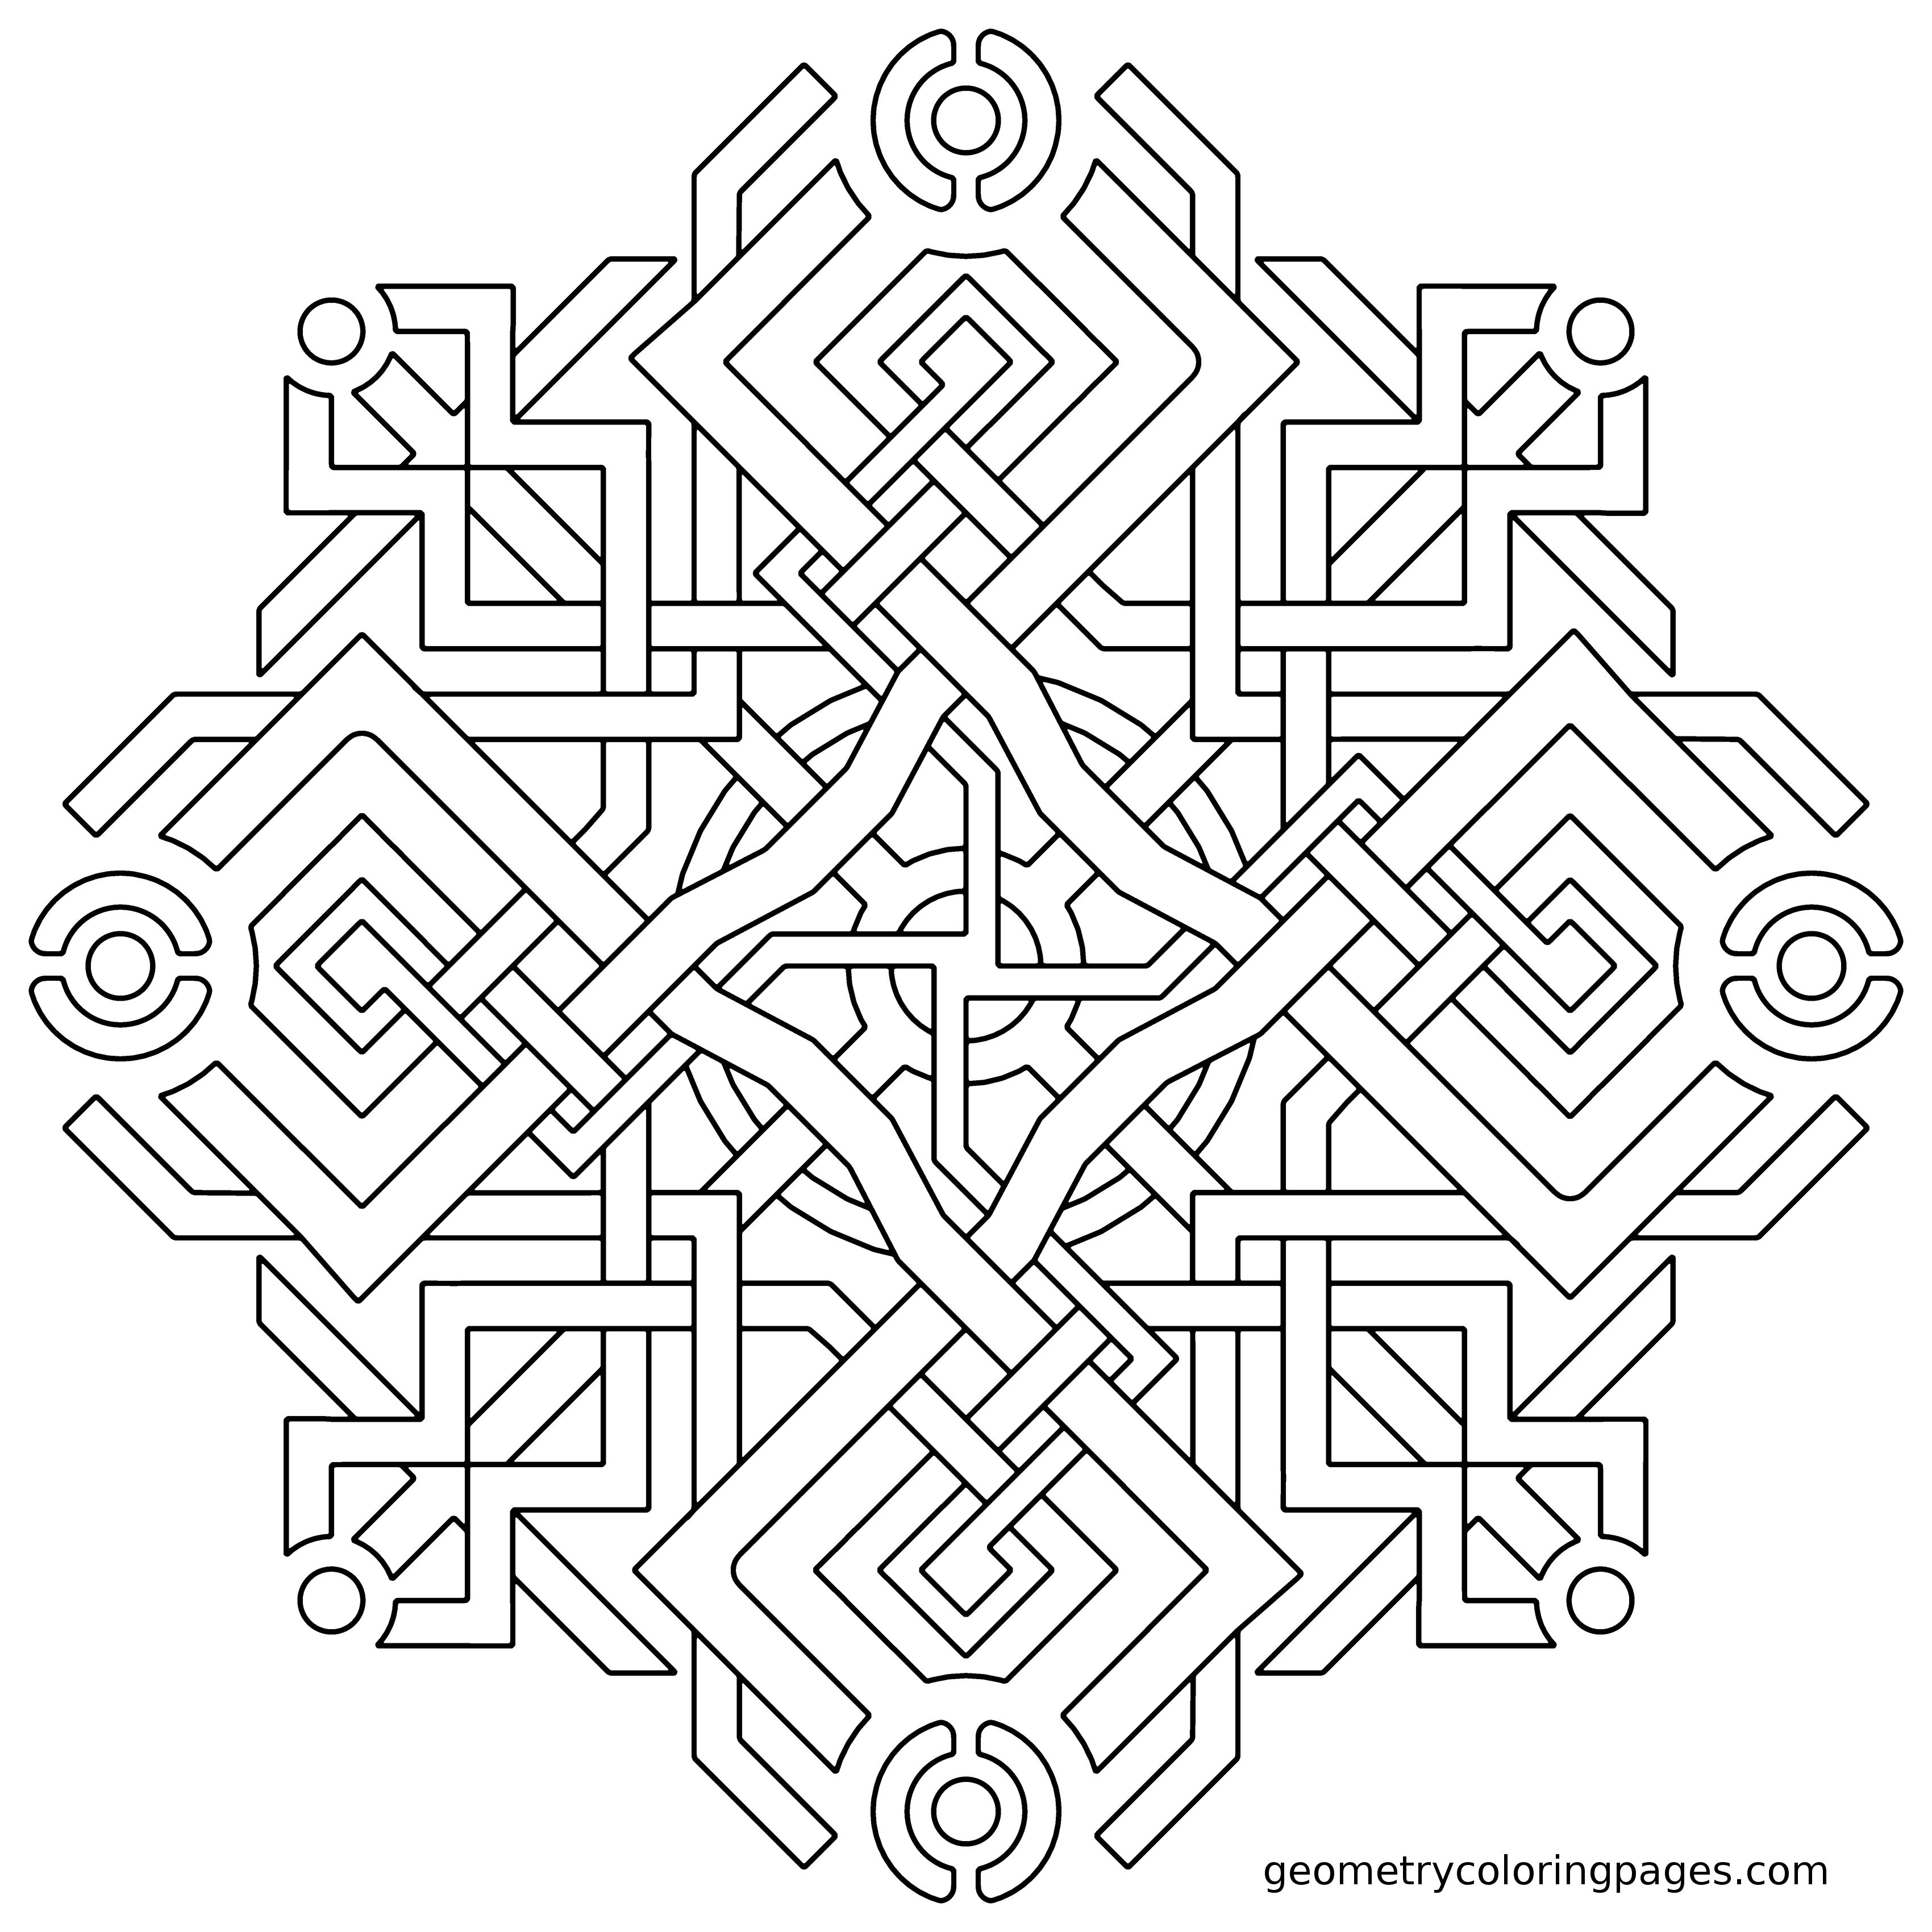 coloring page  fuzzy logic from geometrycoloringpages com